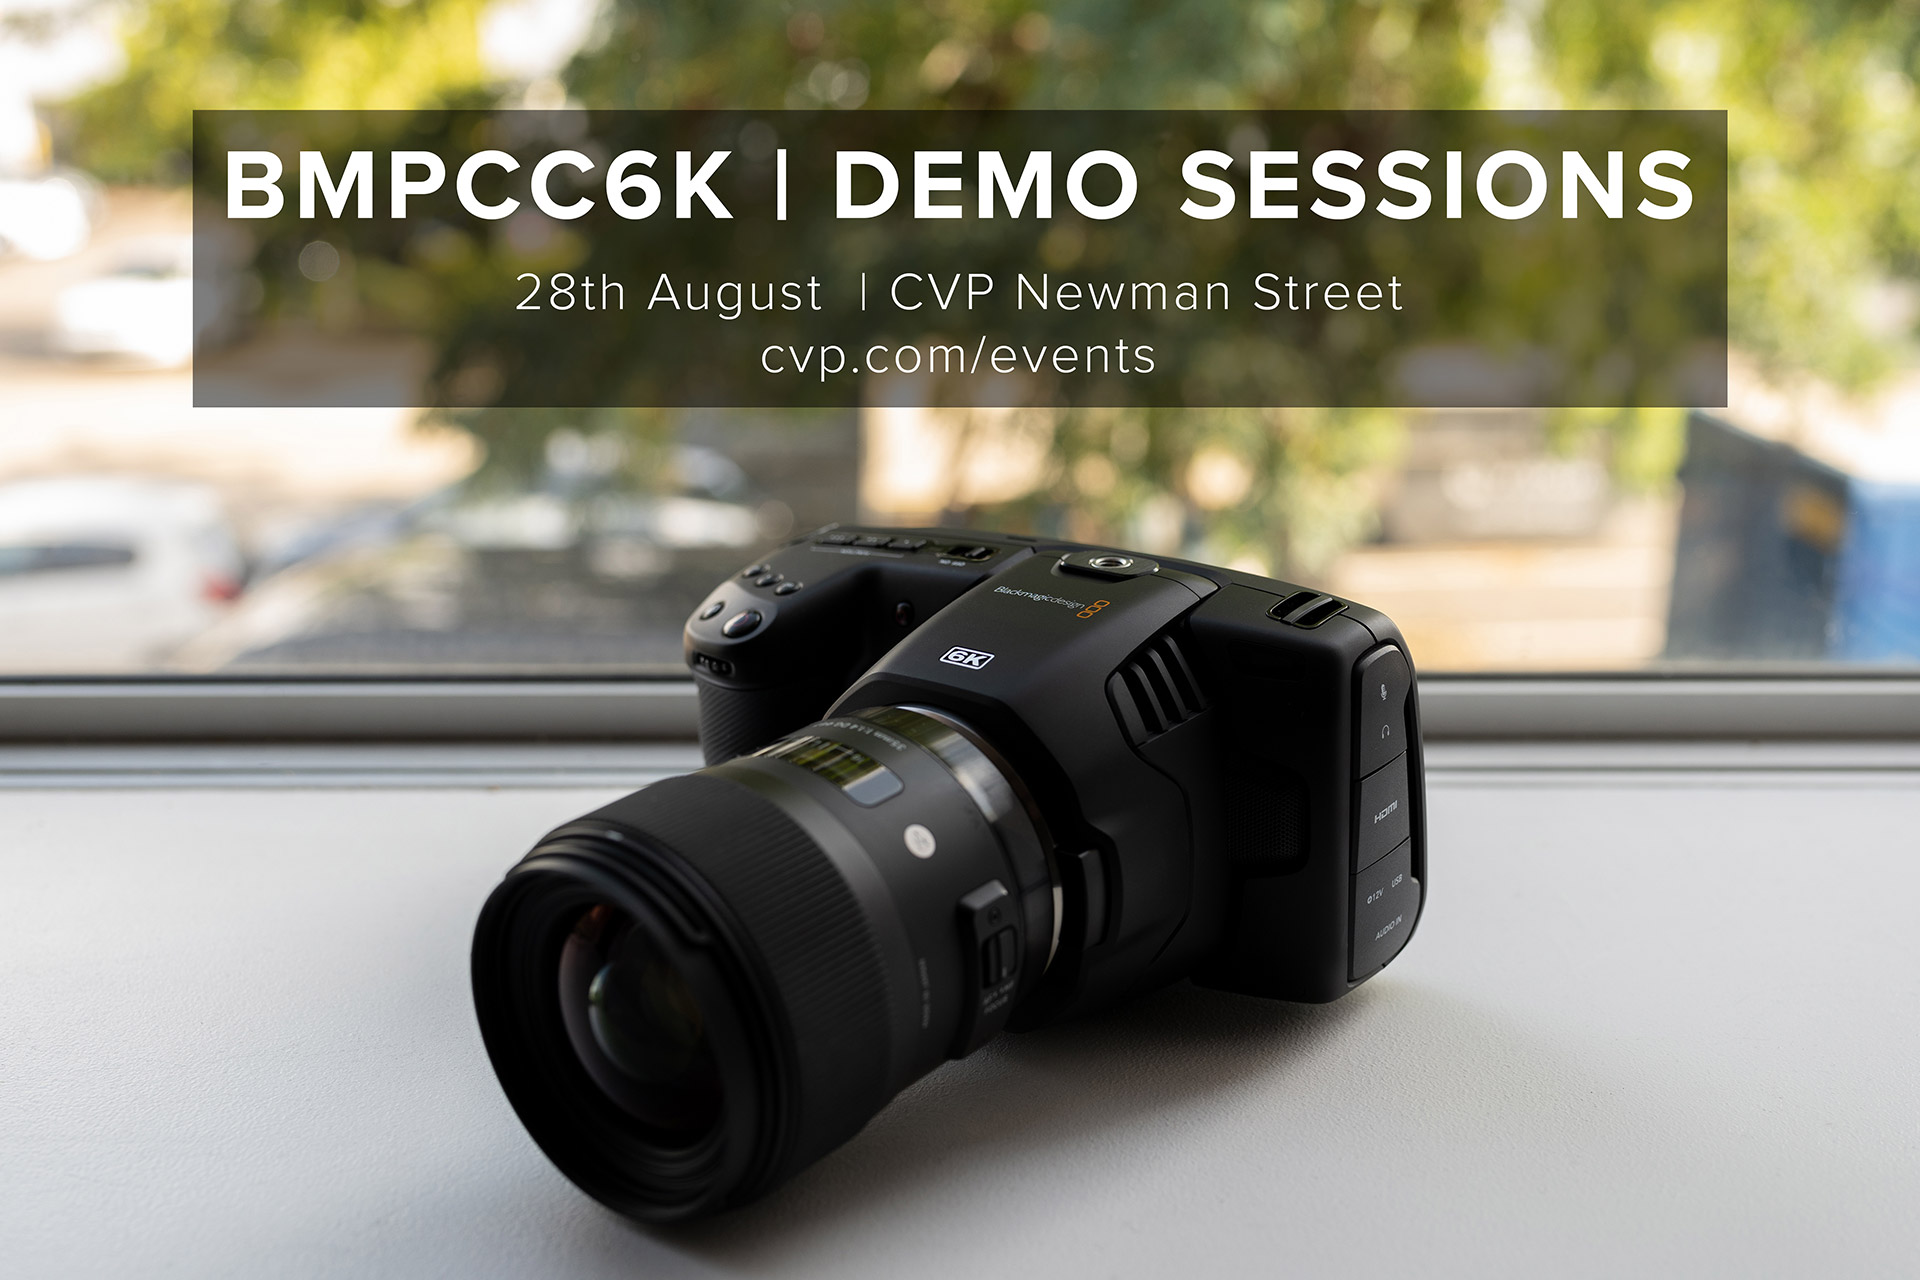 Cvp Com Blackmagic Pocket Cinema Camera 6k Demo Sessions Are You Interested In The Recently Released Blackmagic Pocket Cinema Camera 6k If Yes Join Us For An Hour Long Demo And